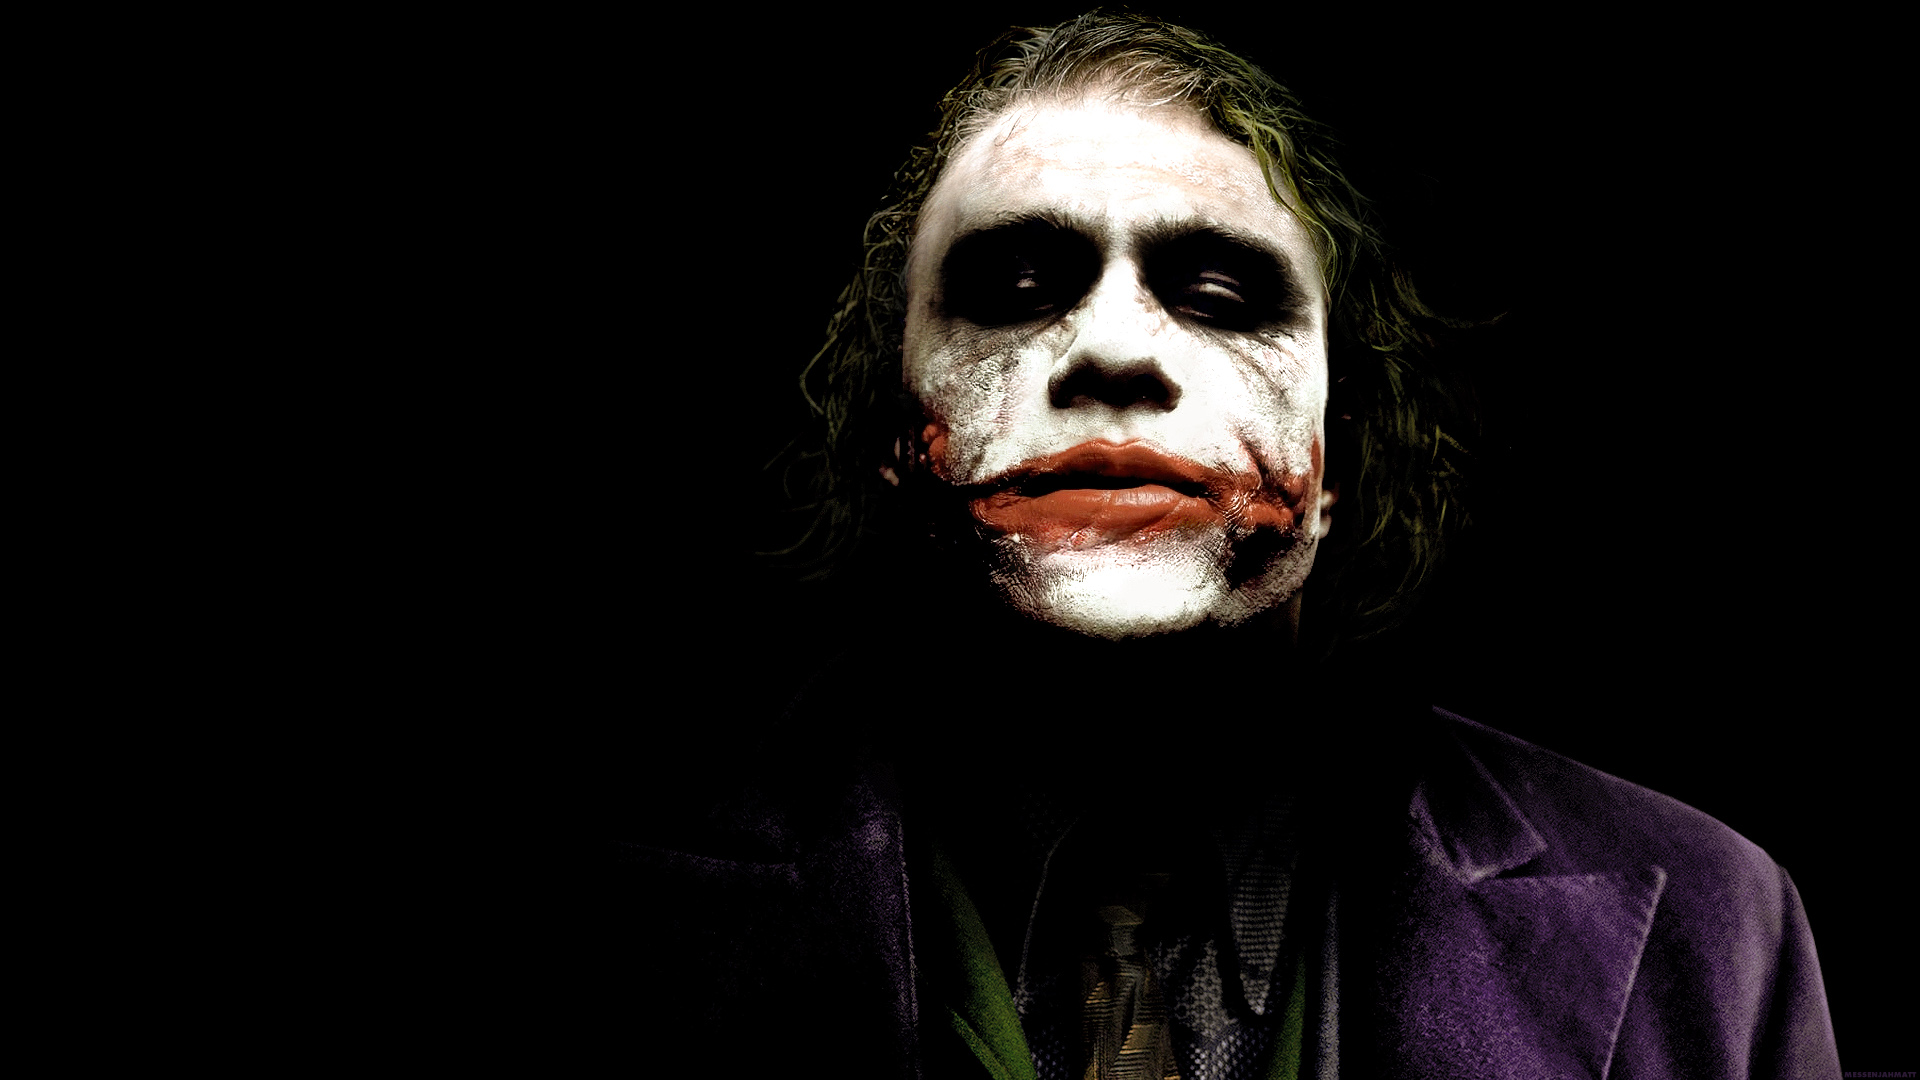 joker_the_dark_knight_wallpaper_1920x1080